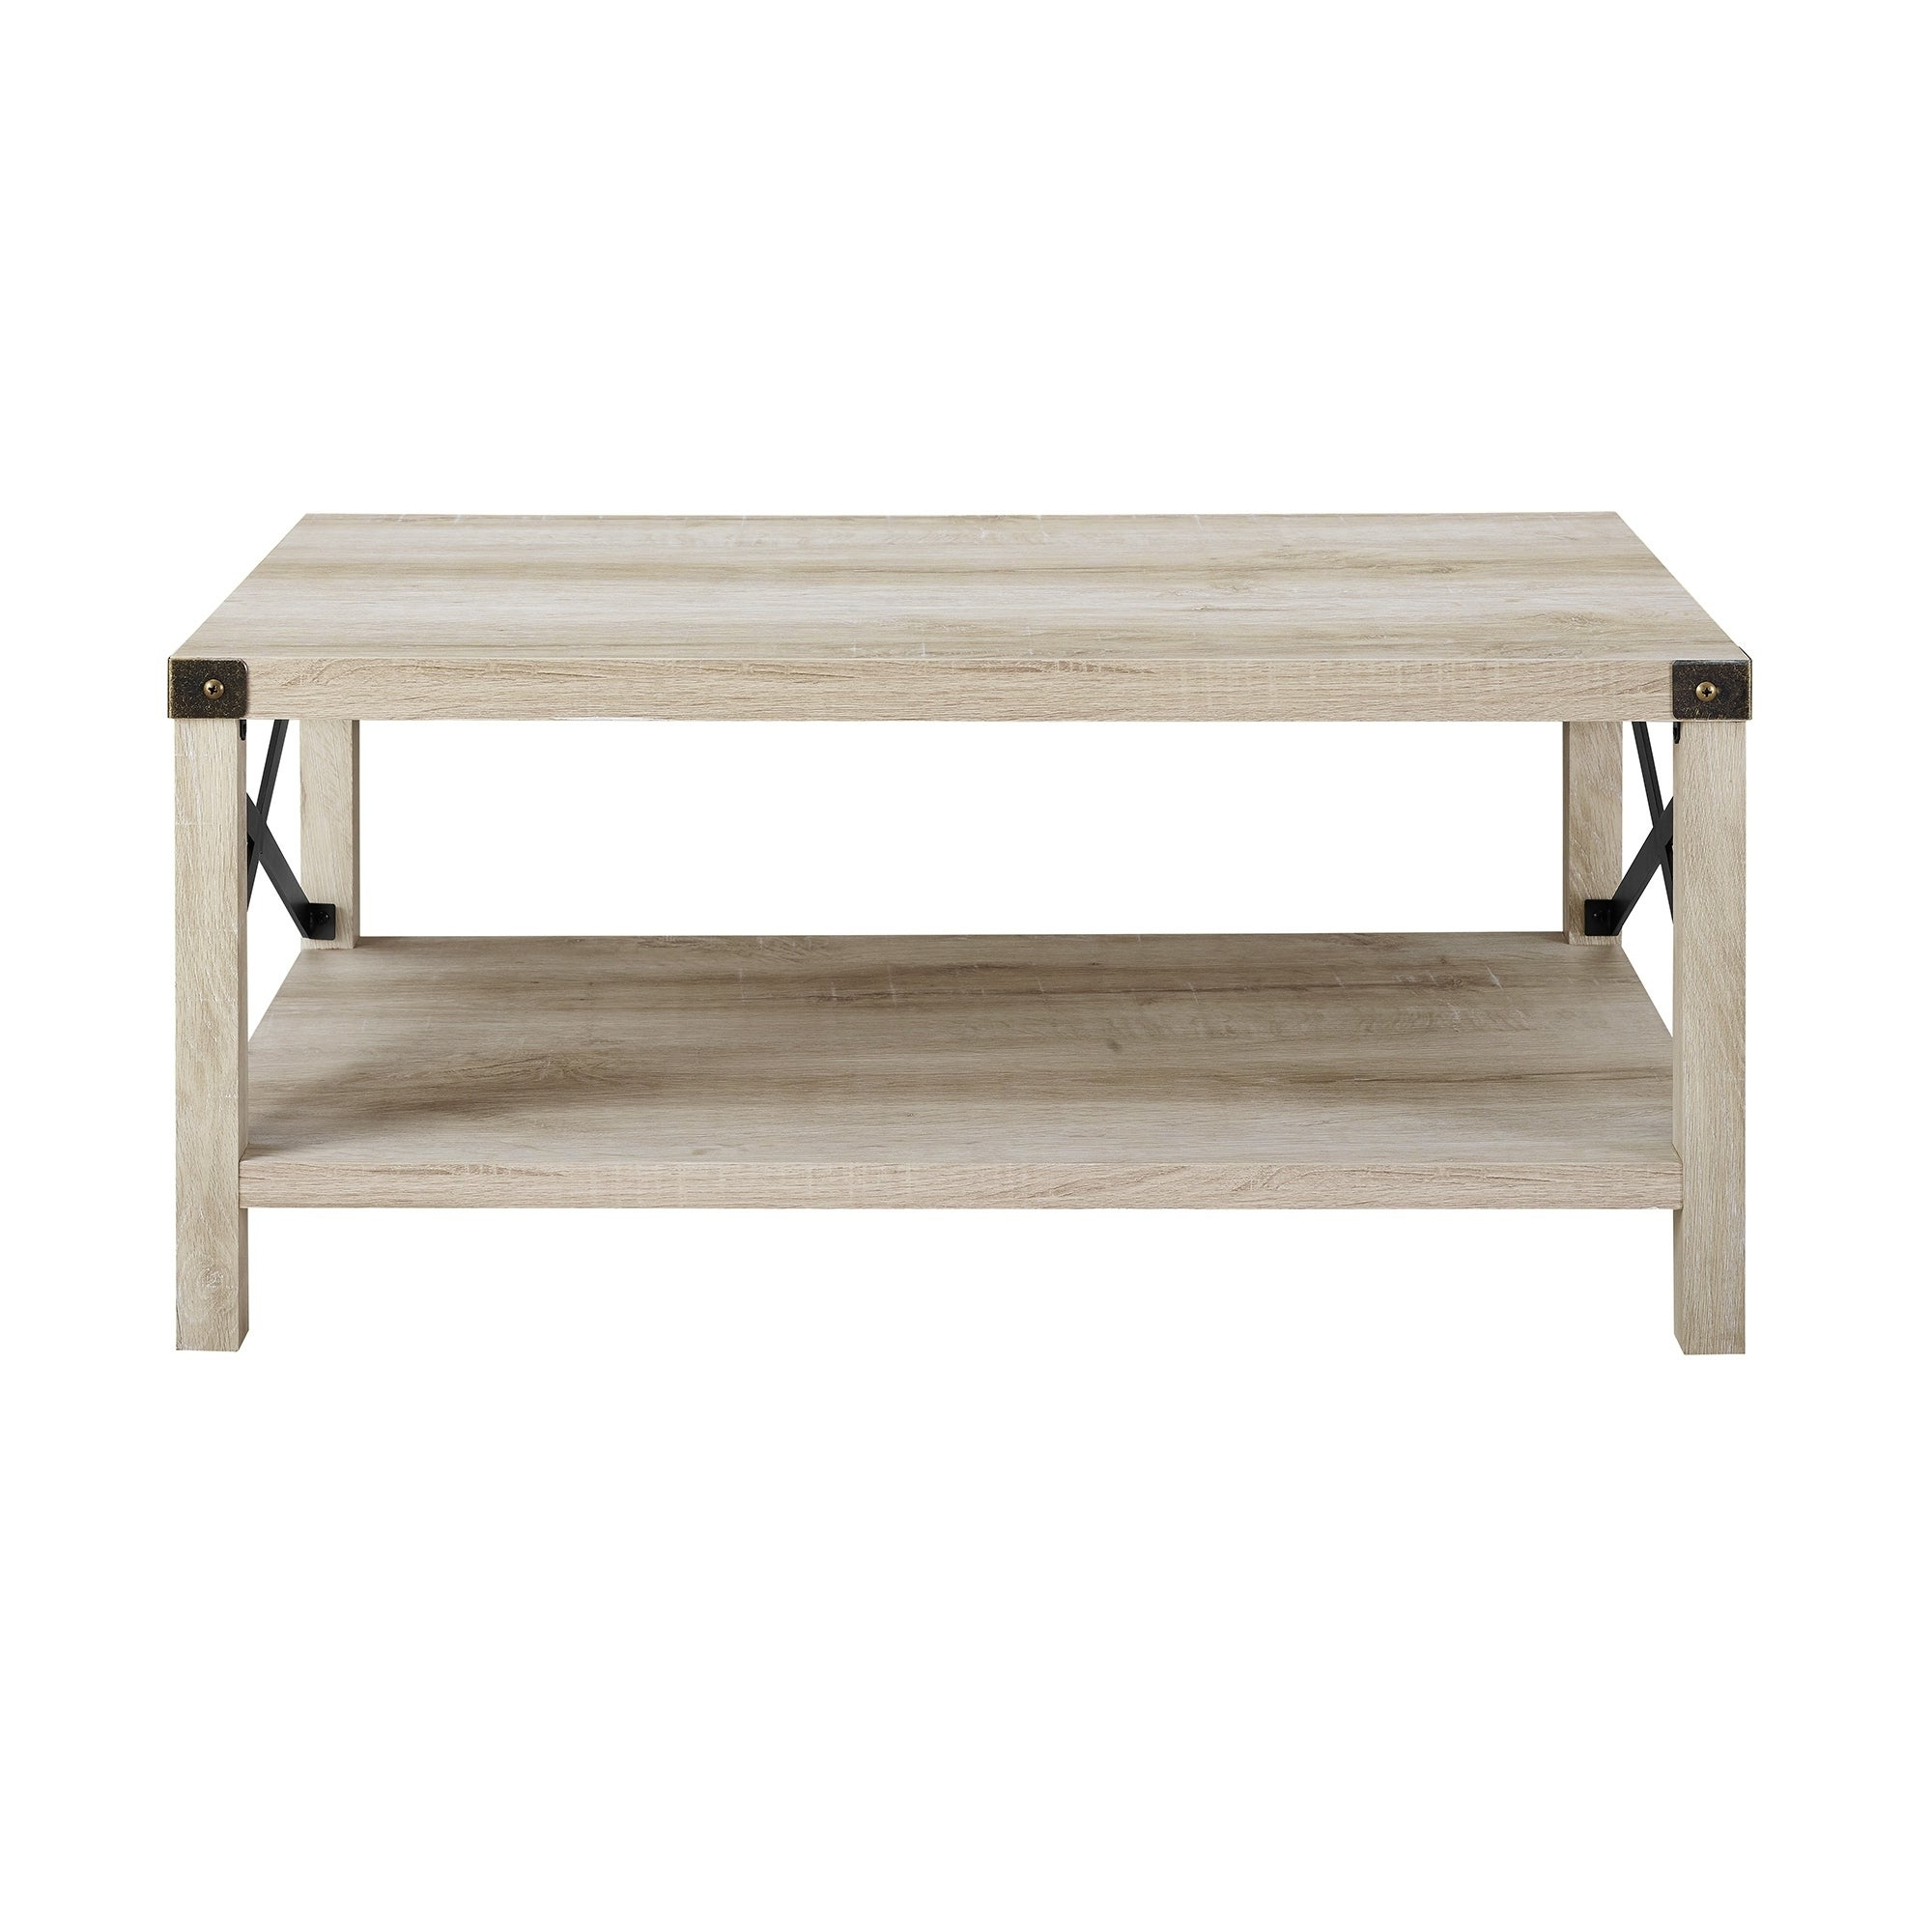 Favorite The Gray Barn Kujawa Metal X Coffee Tables – 40 X 22 X 18h Regarding The Gray Barn Kujawa Metal X Coffee Table – 40 X 22 X 18h (View 5 of 20)